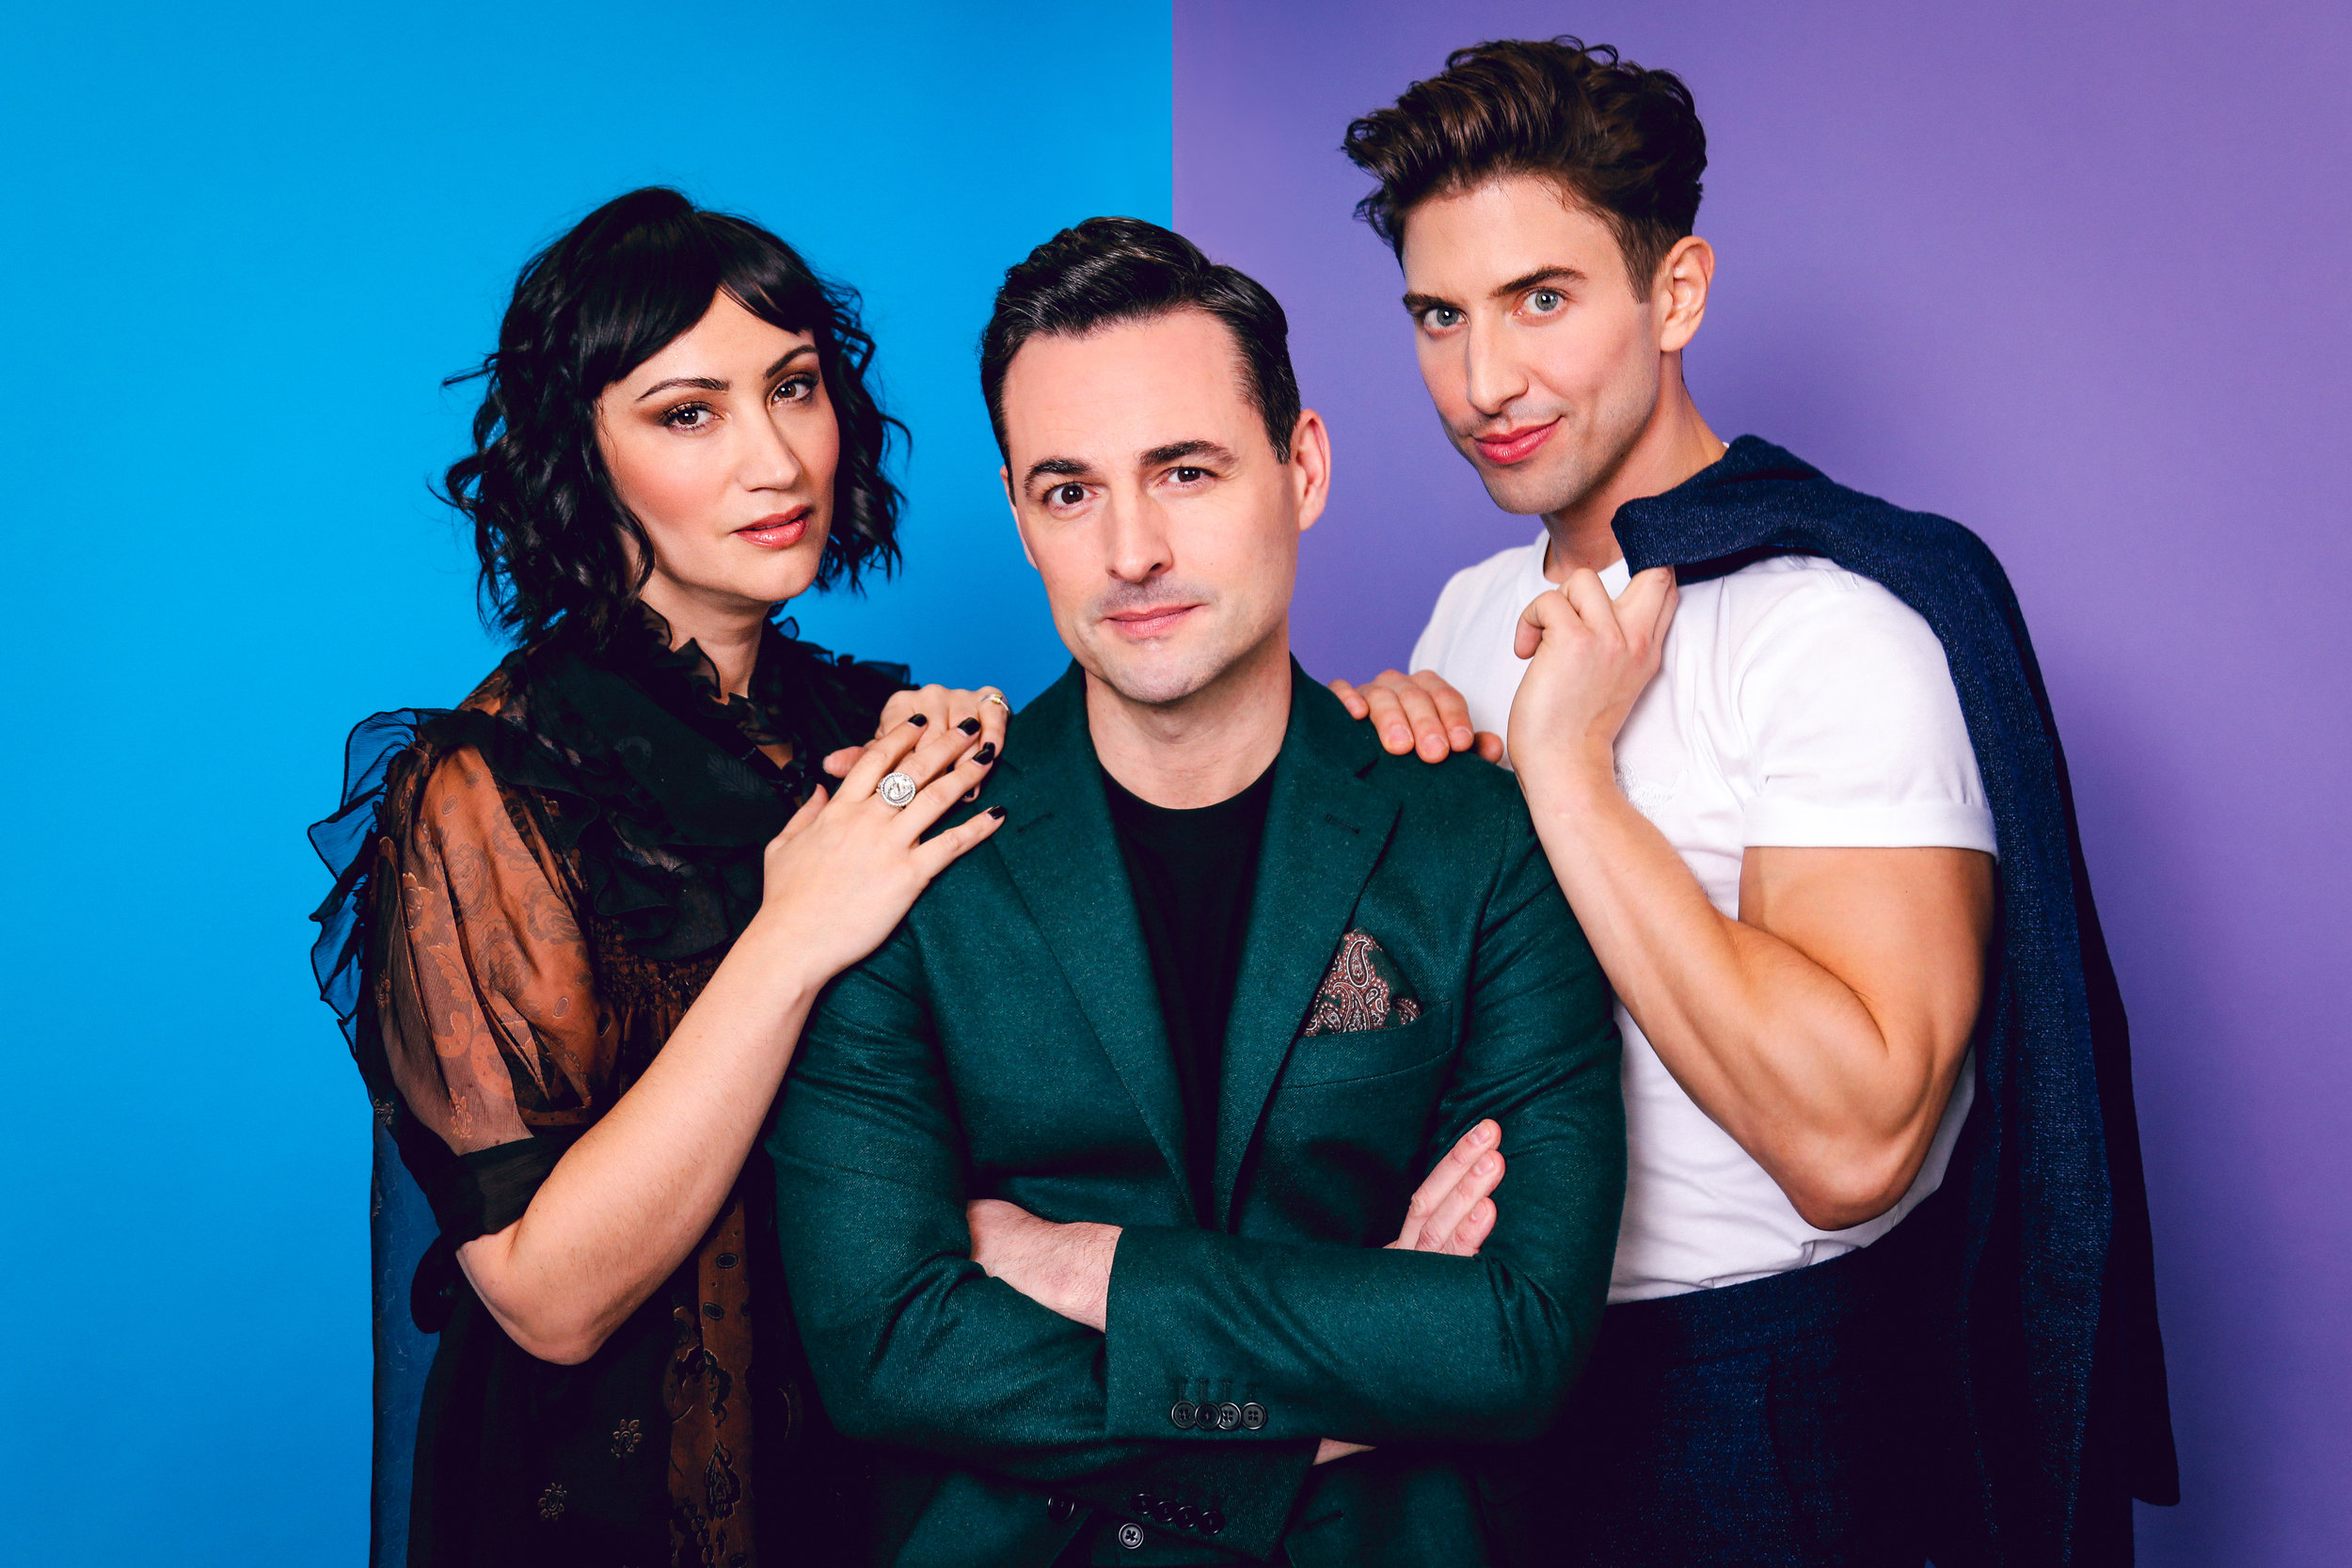 Eden Espinosa, Max von Essen, and Nick Adams of the Falsettos National Tour cast. Photo by Marc J. Franklin courtesy of Playbill.